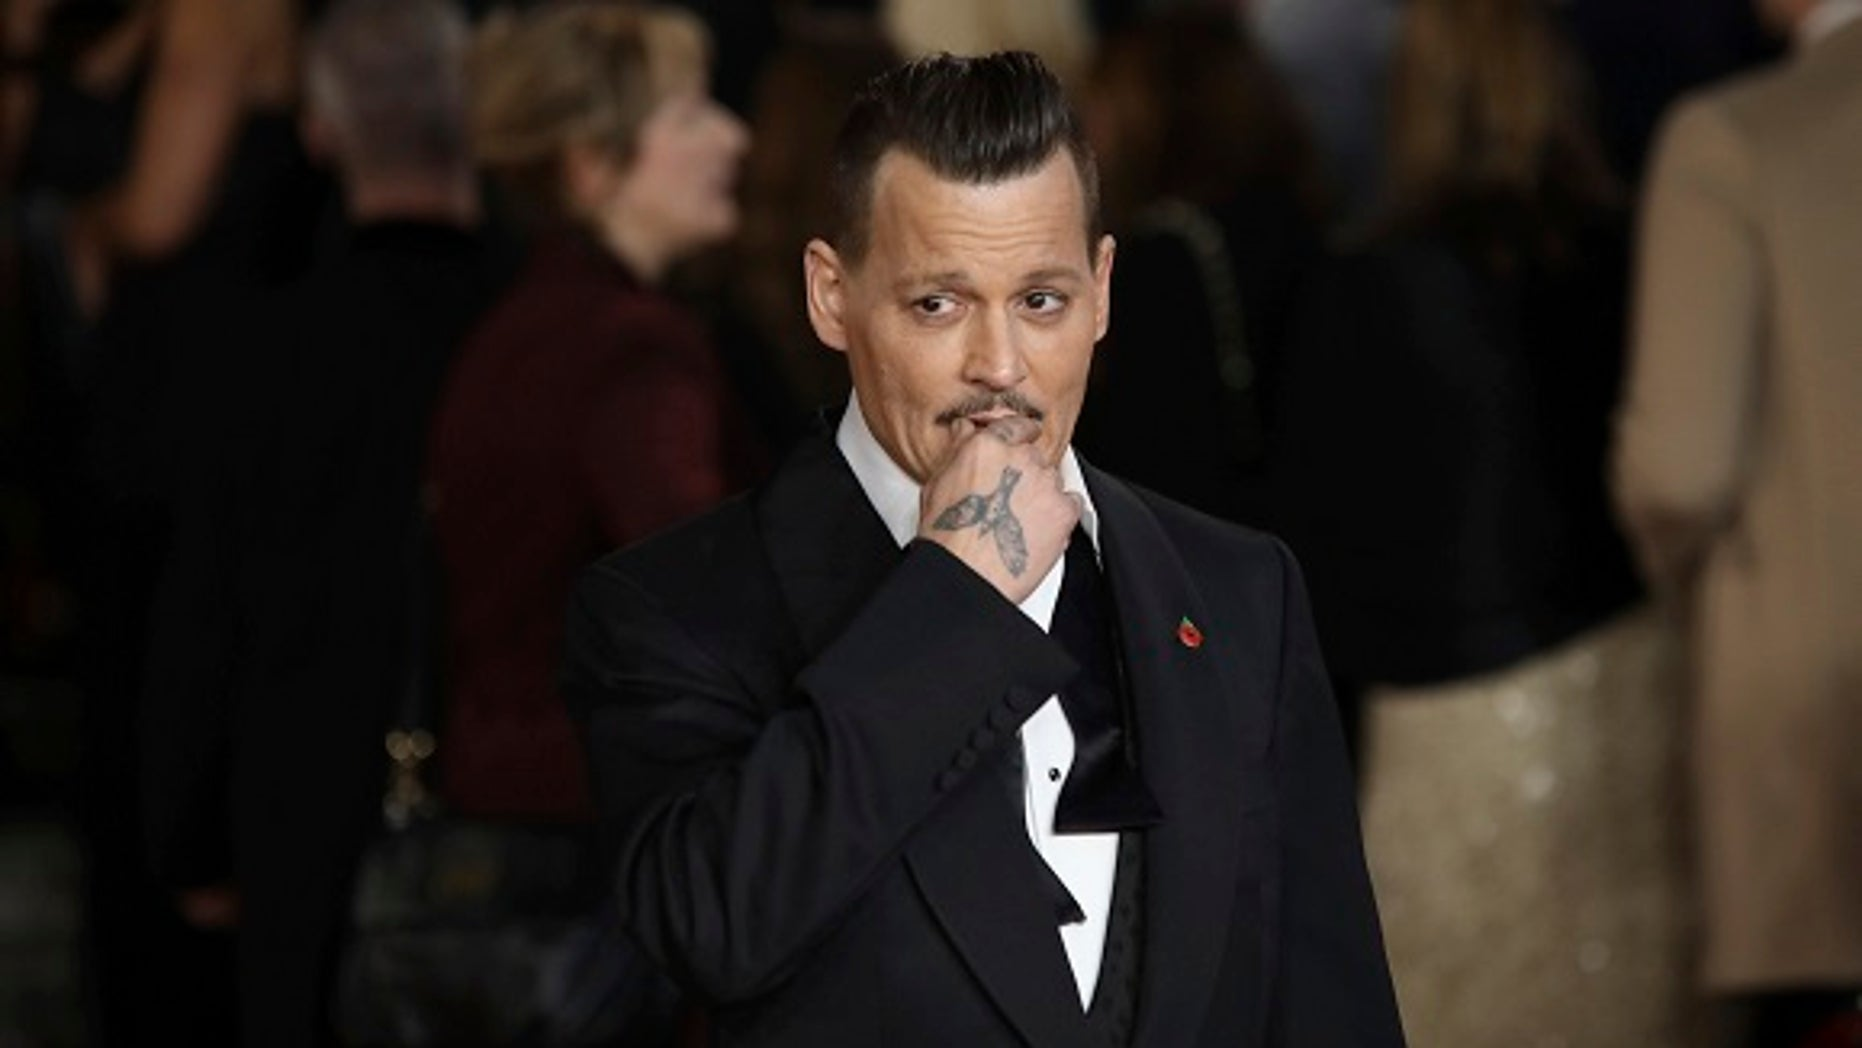 Johnny Depp's former managers want to foreclose the actor's five Los Angeles properties to pay back a $5 million loan they took out for him.